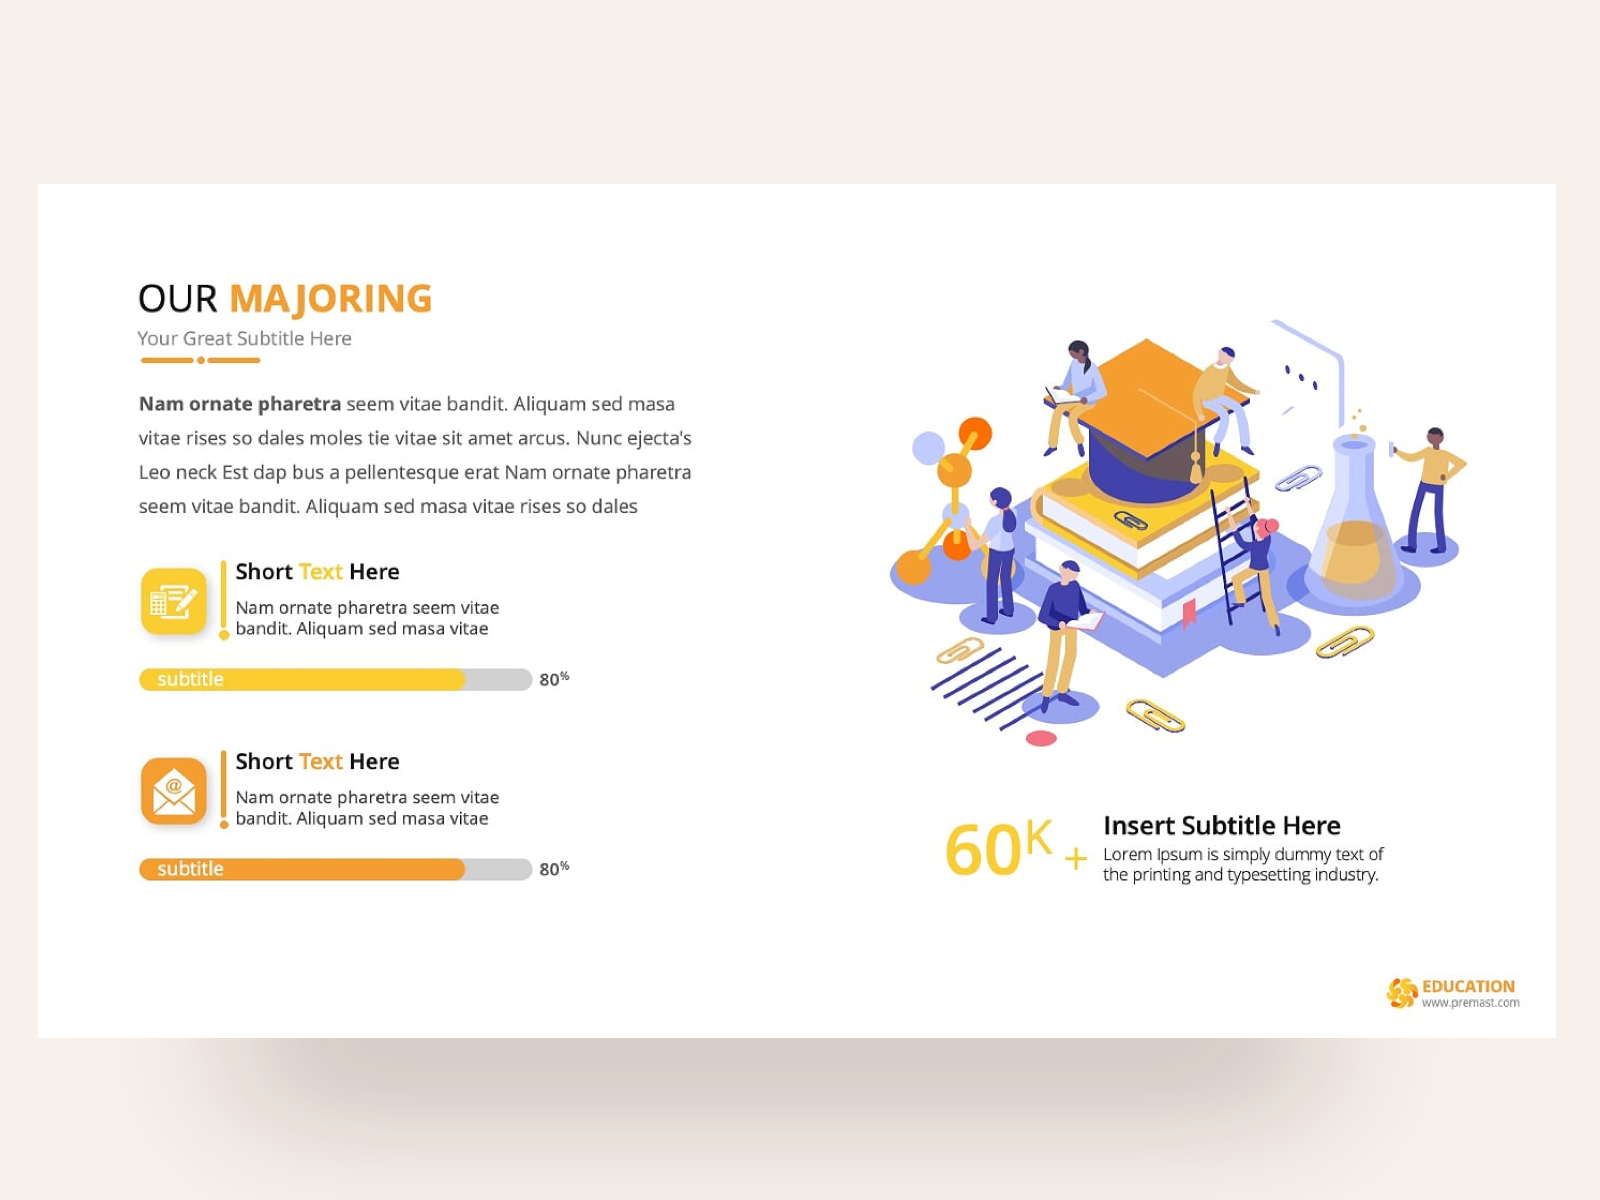 Education Powerpoint Presentation Template By Premast On Dribbble